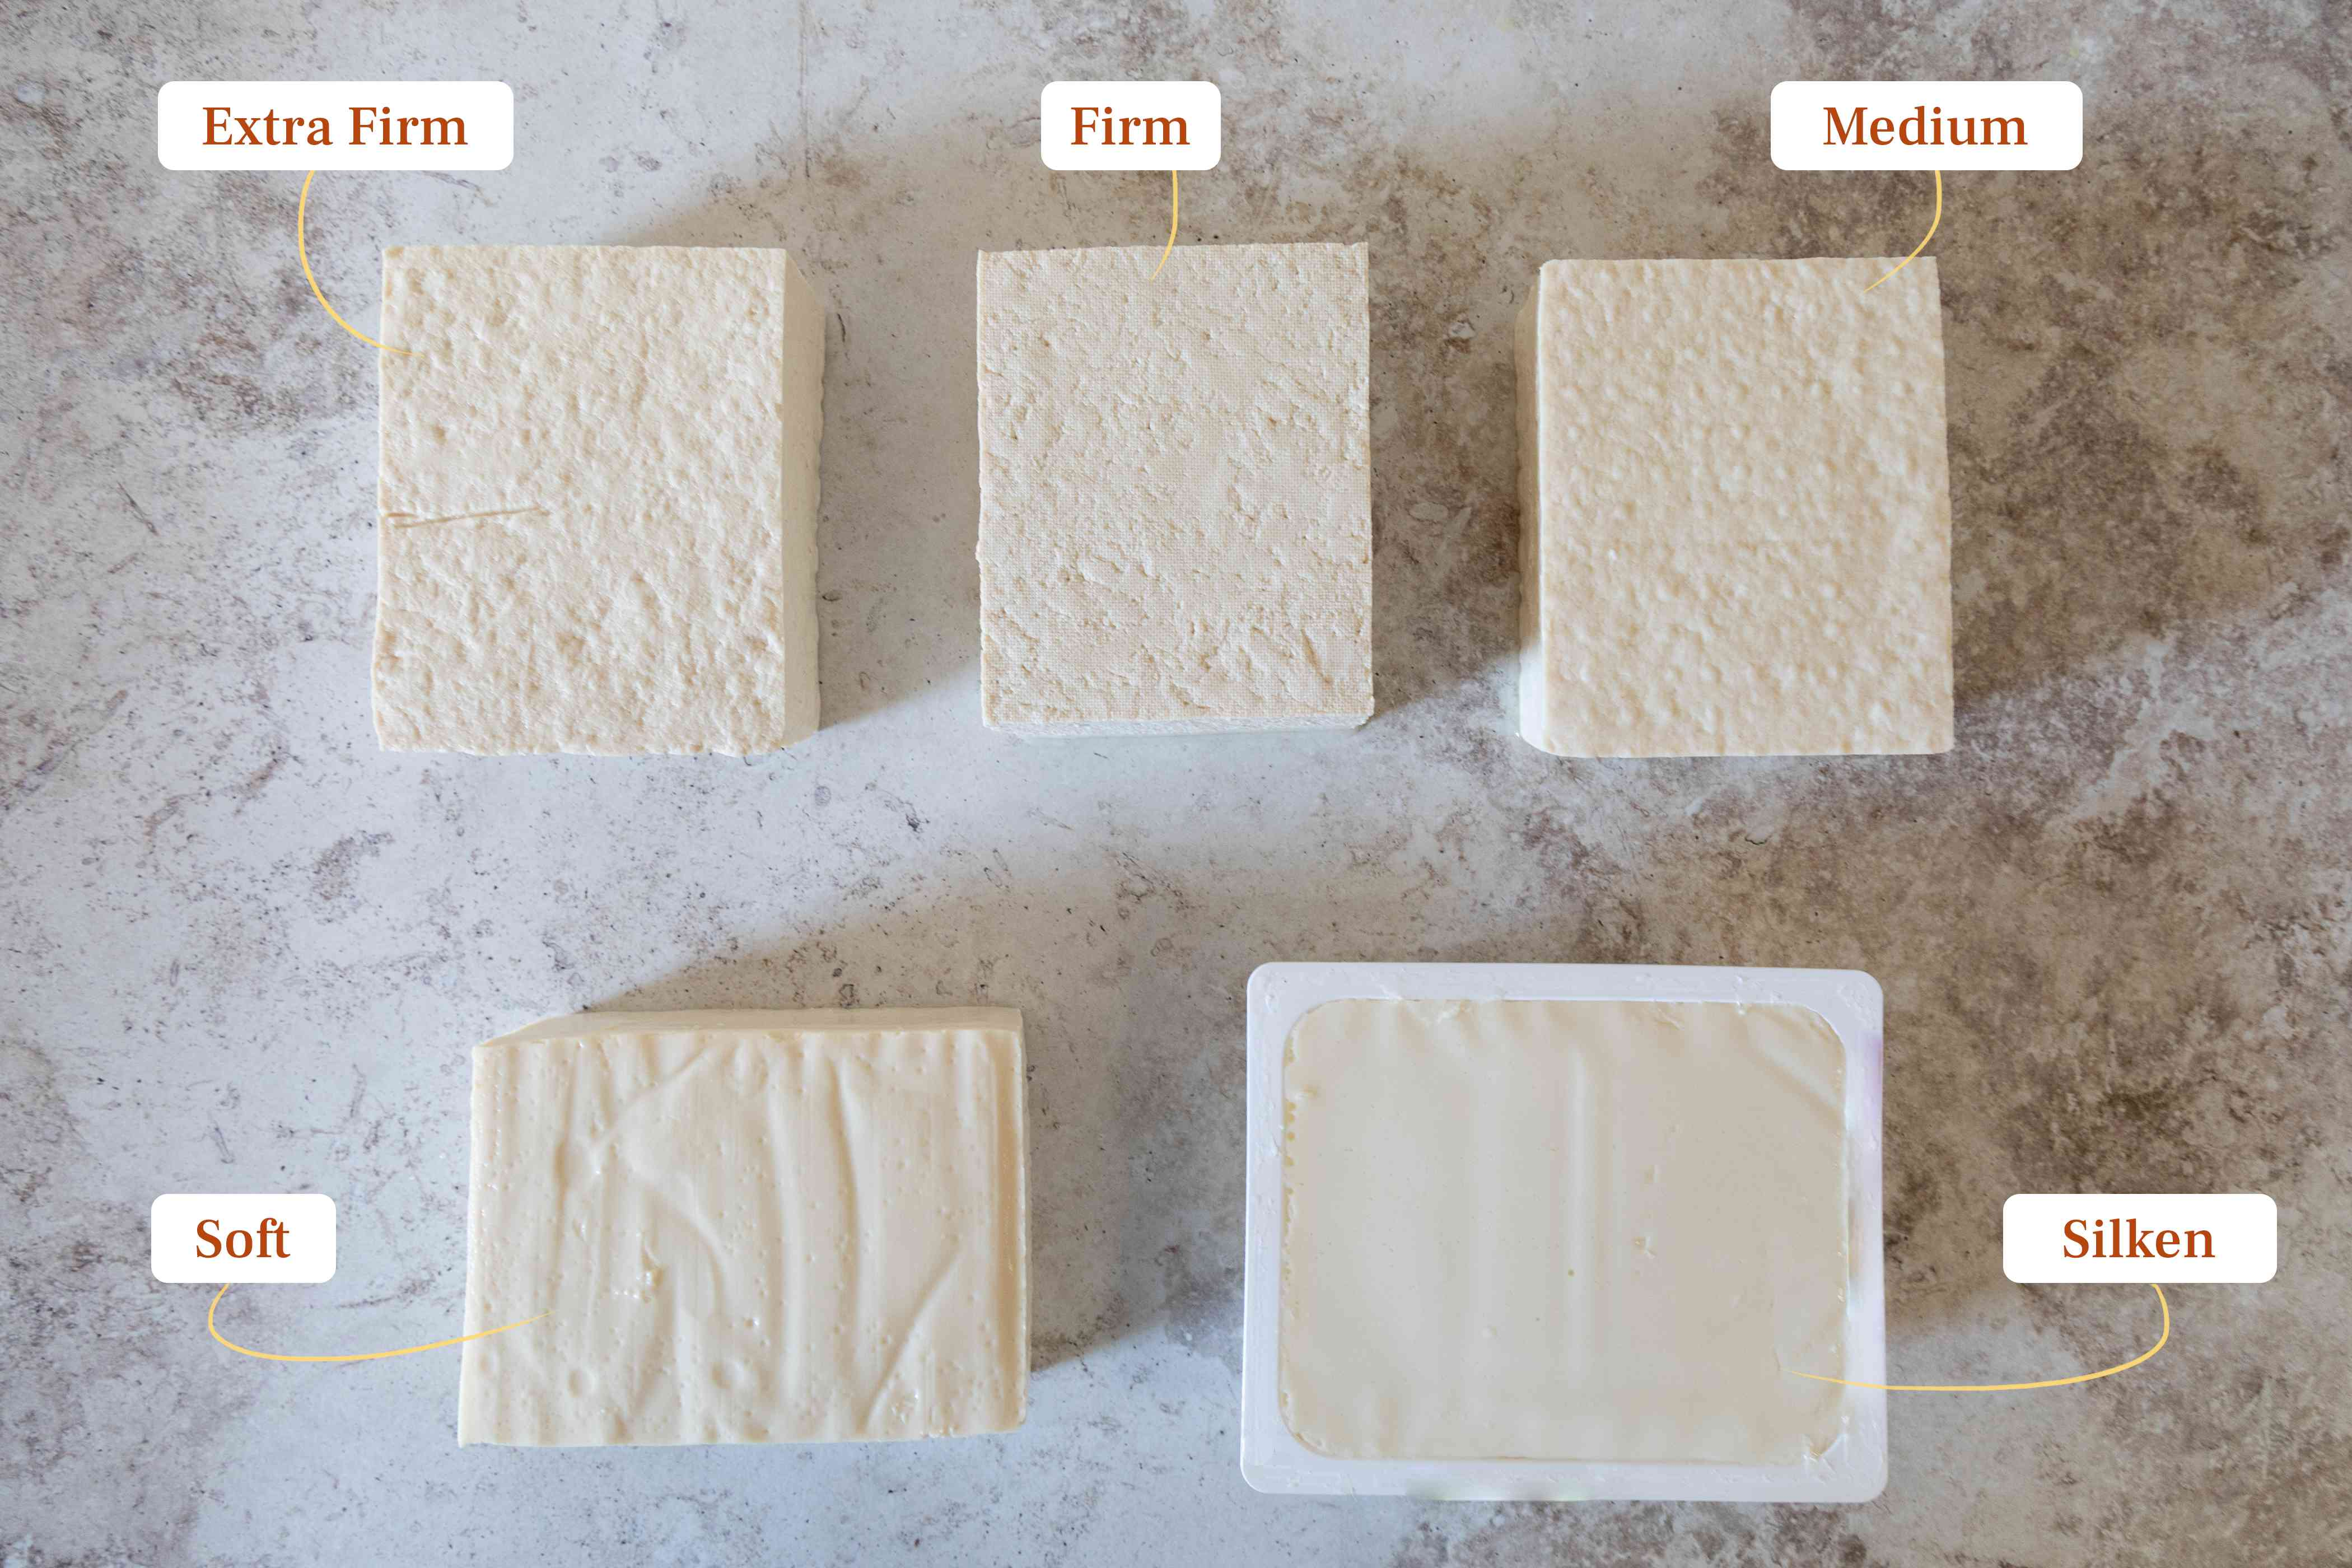 Tofu types and textures